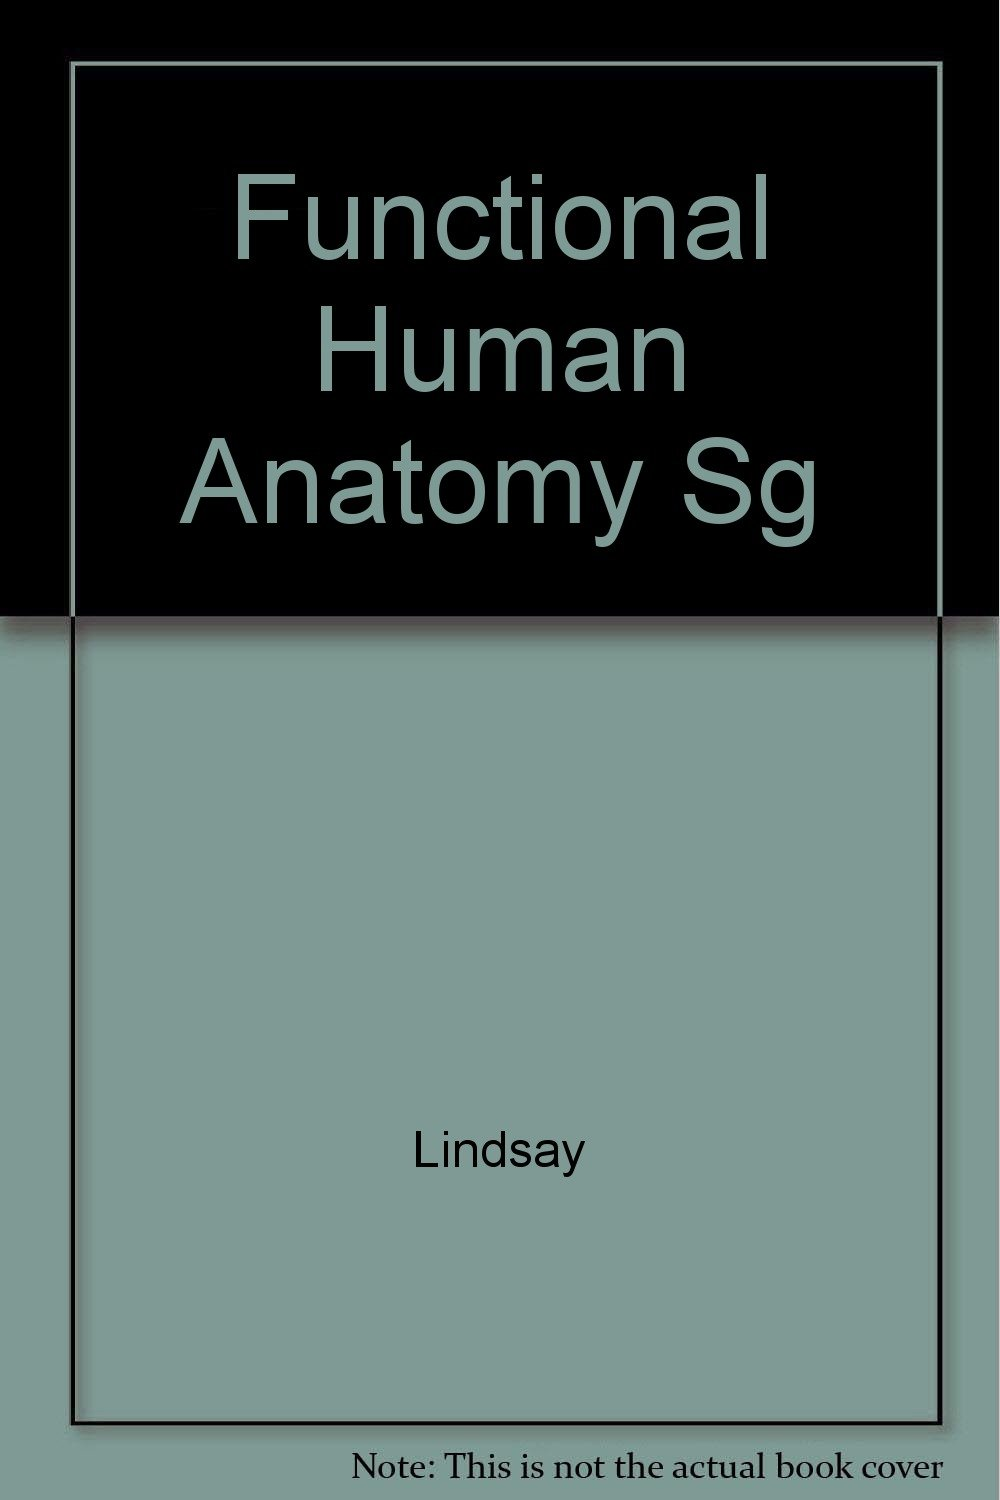 Study Guide To Accompany Lindsay Functional Human Anatomy Deloris